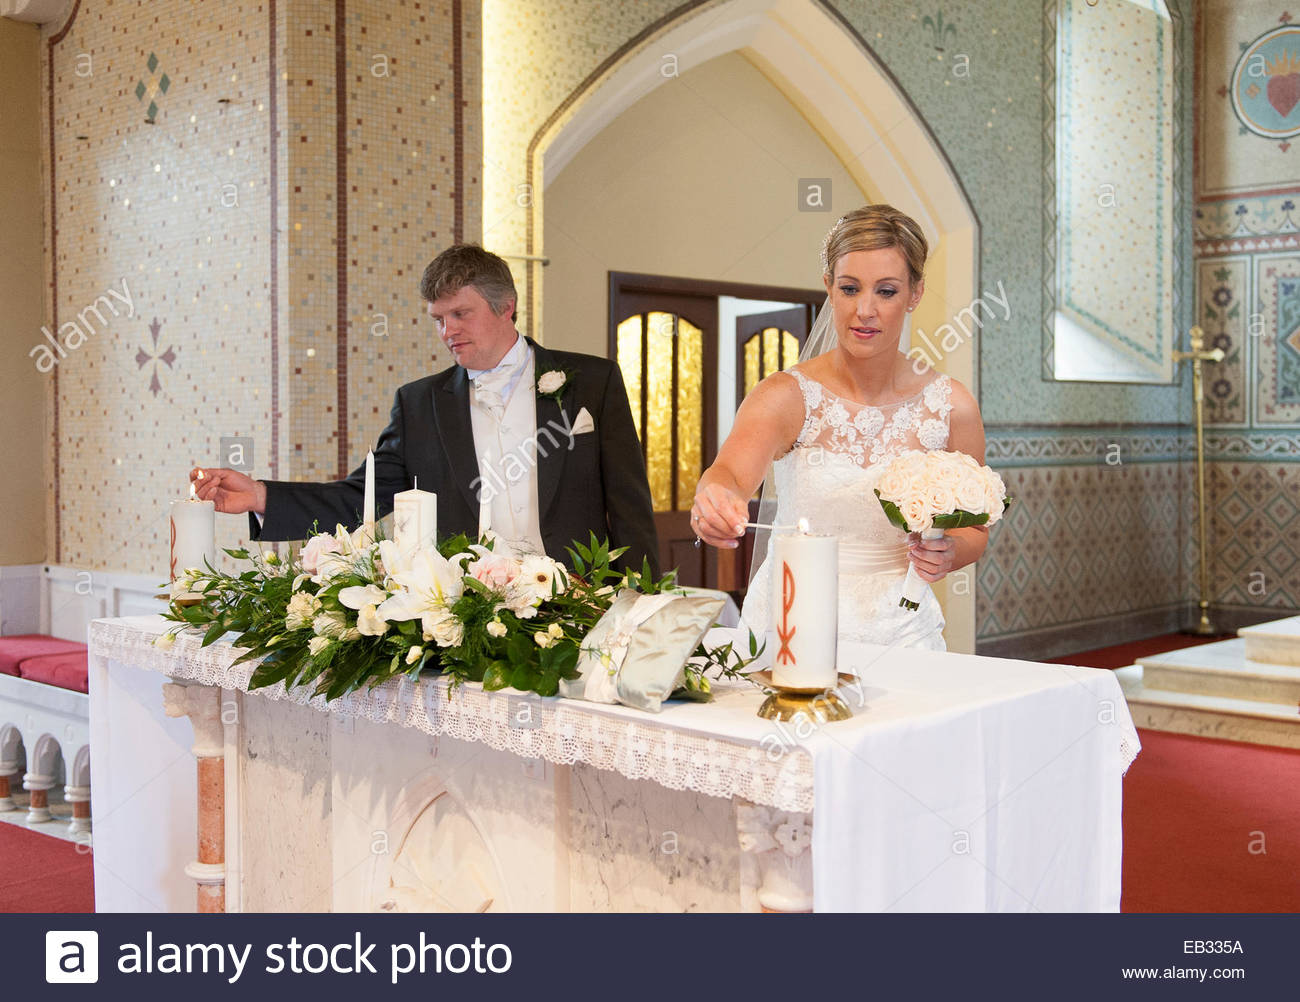 https www alamy com stock photo a bride and groom light their wedding candles during their wedding 75671046 html